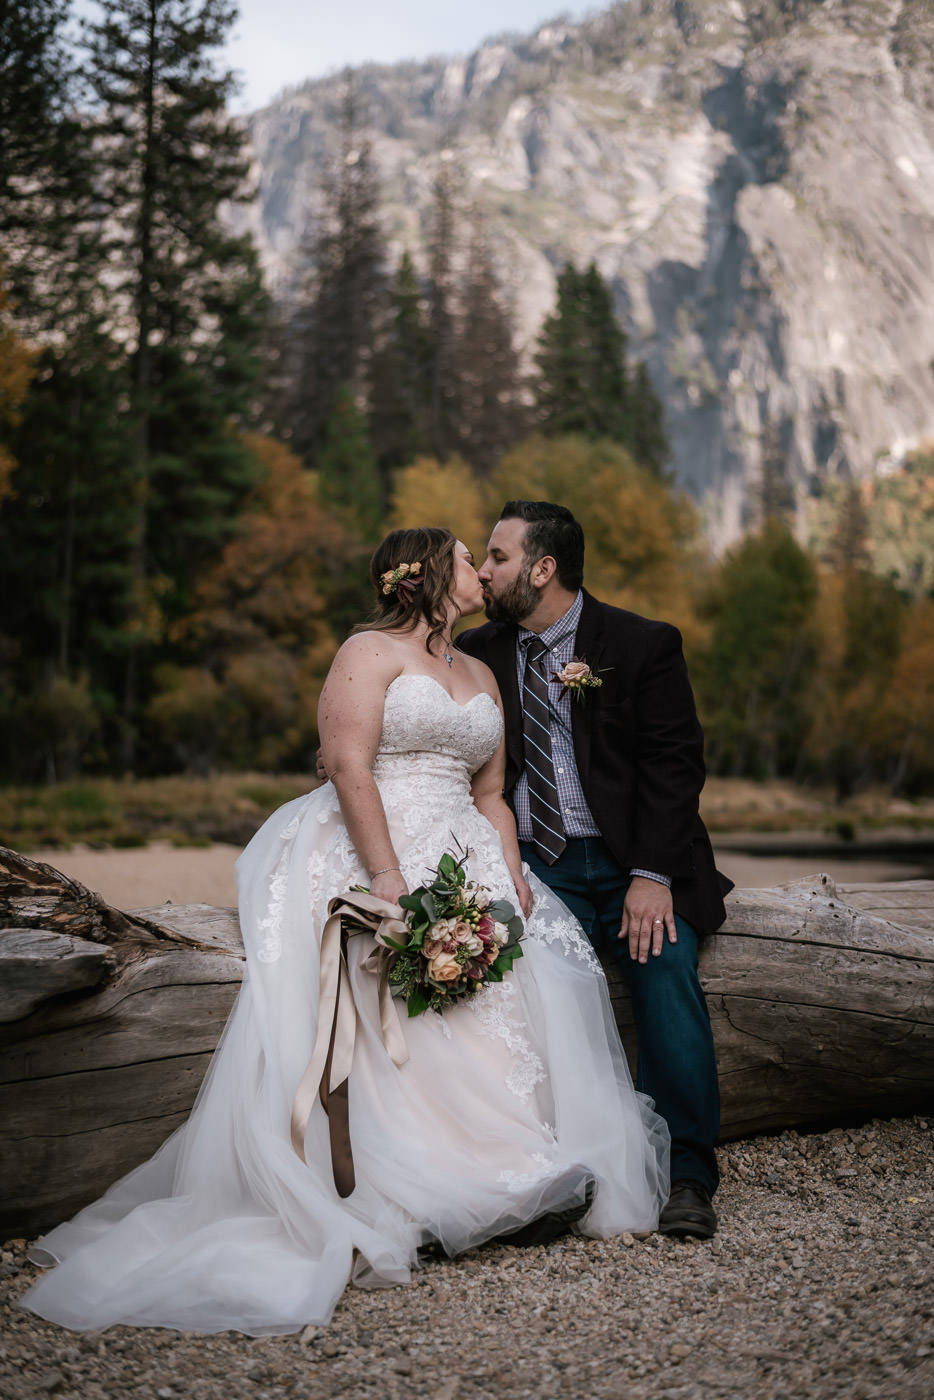 cathedral-beach-elopement-ceremony-yosemite-26.jpg